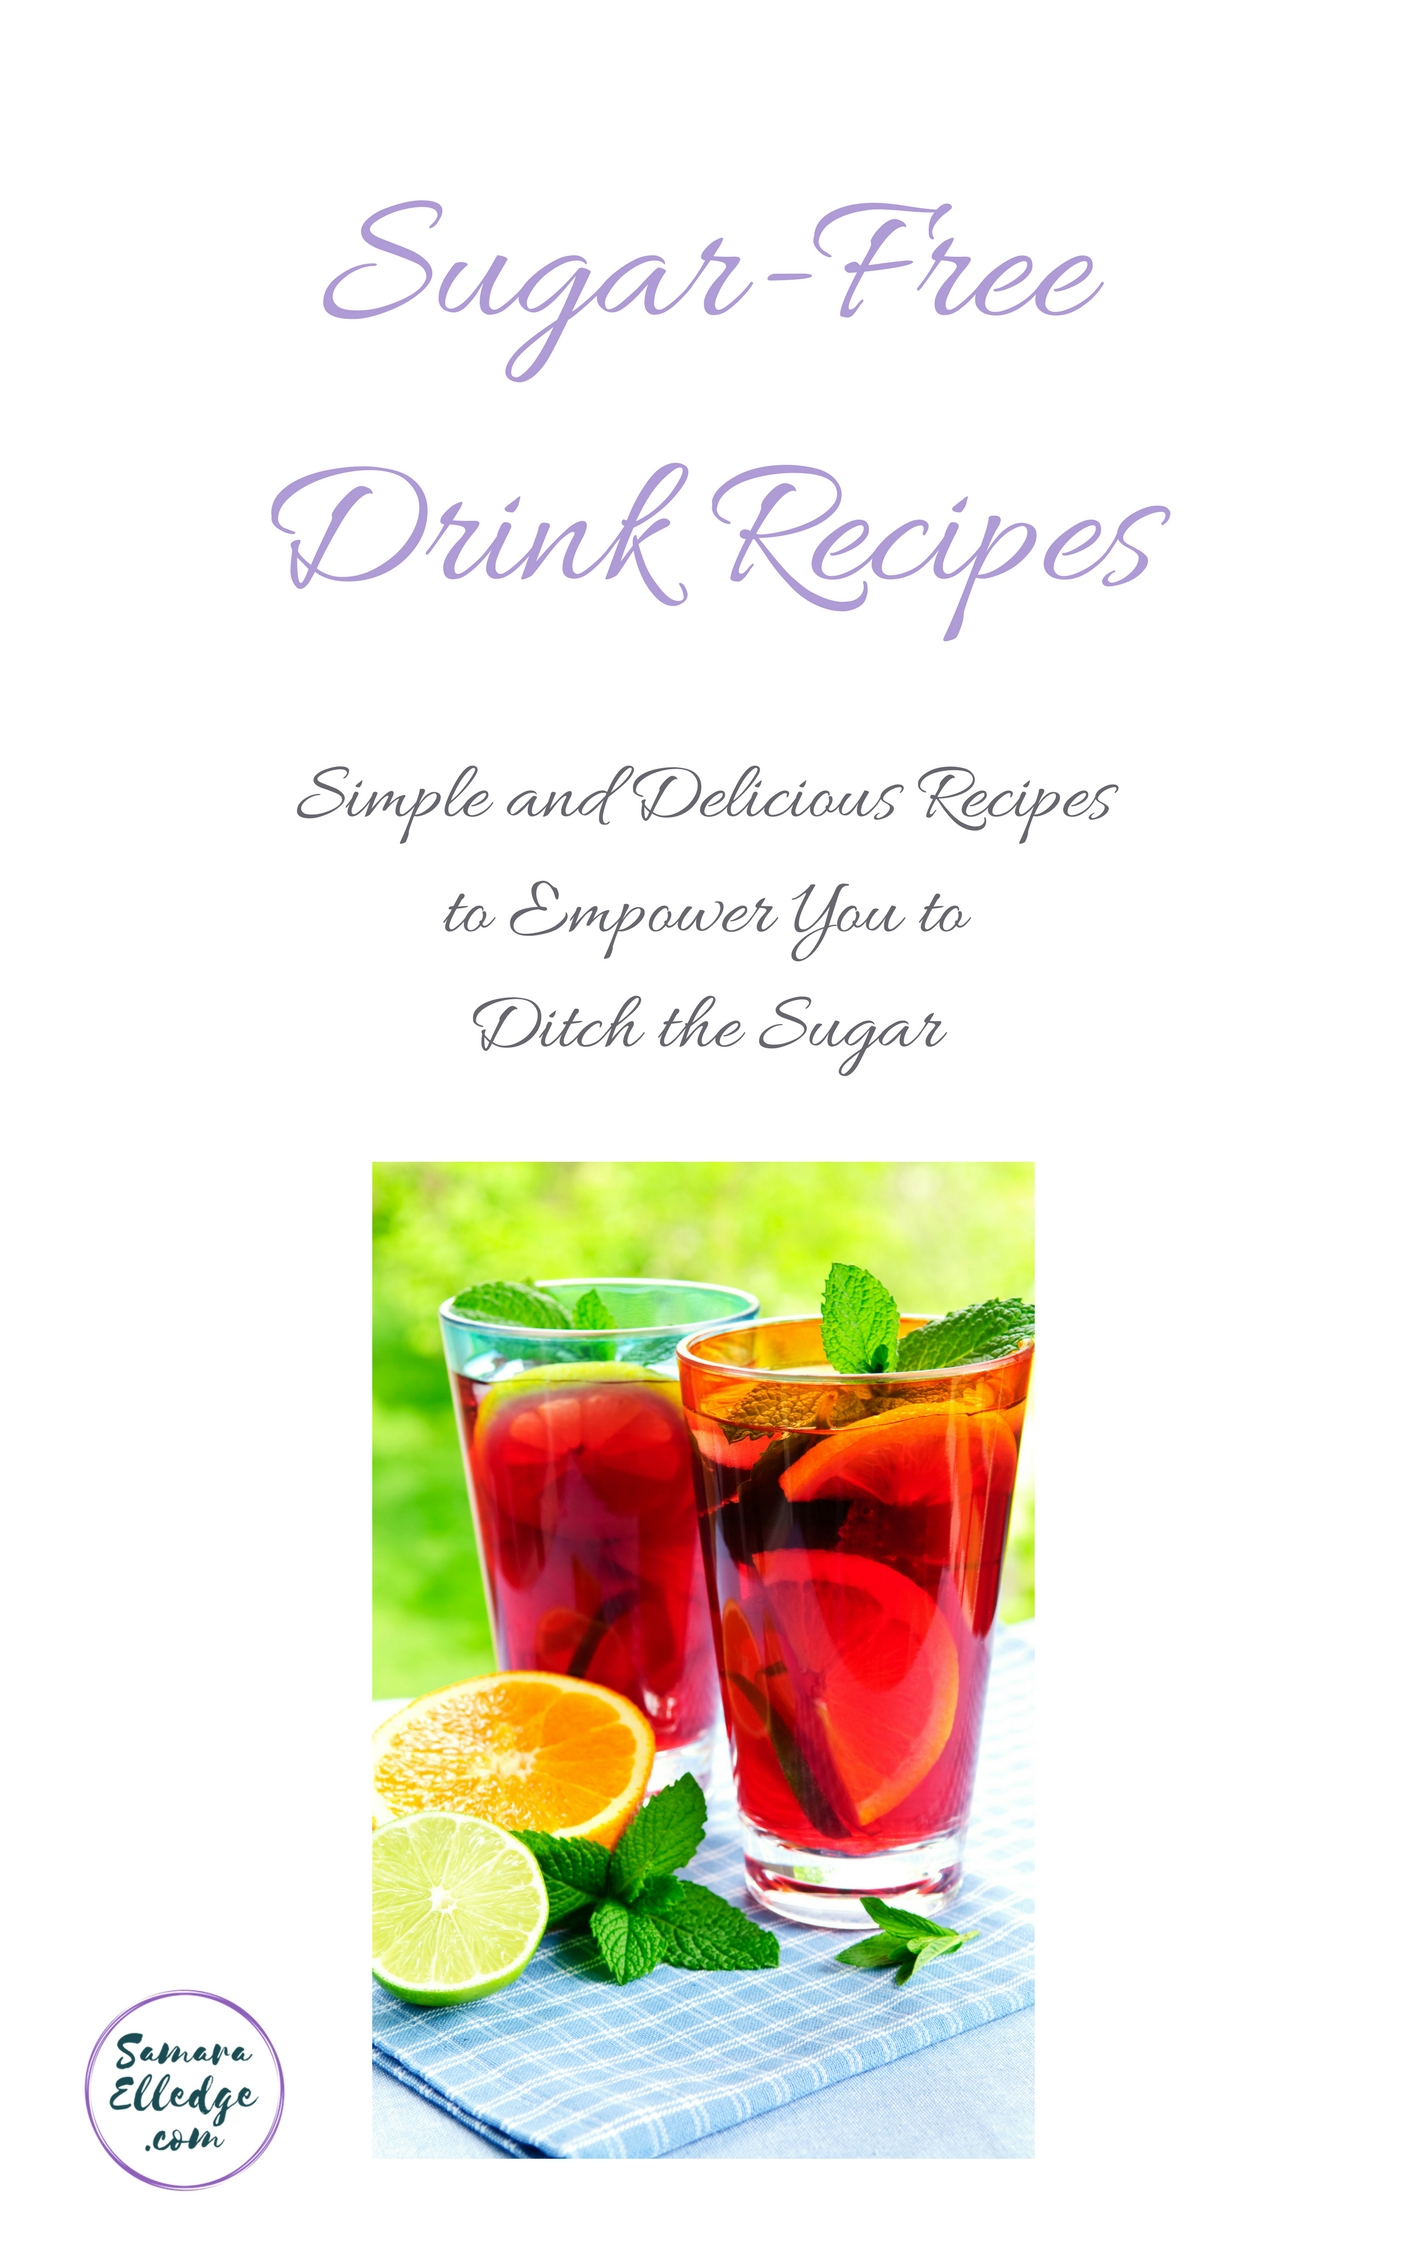 Sugar-Free Drink Recipes Cover.jpg